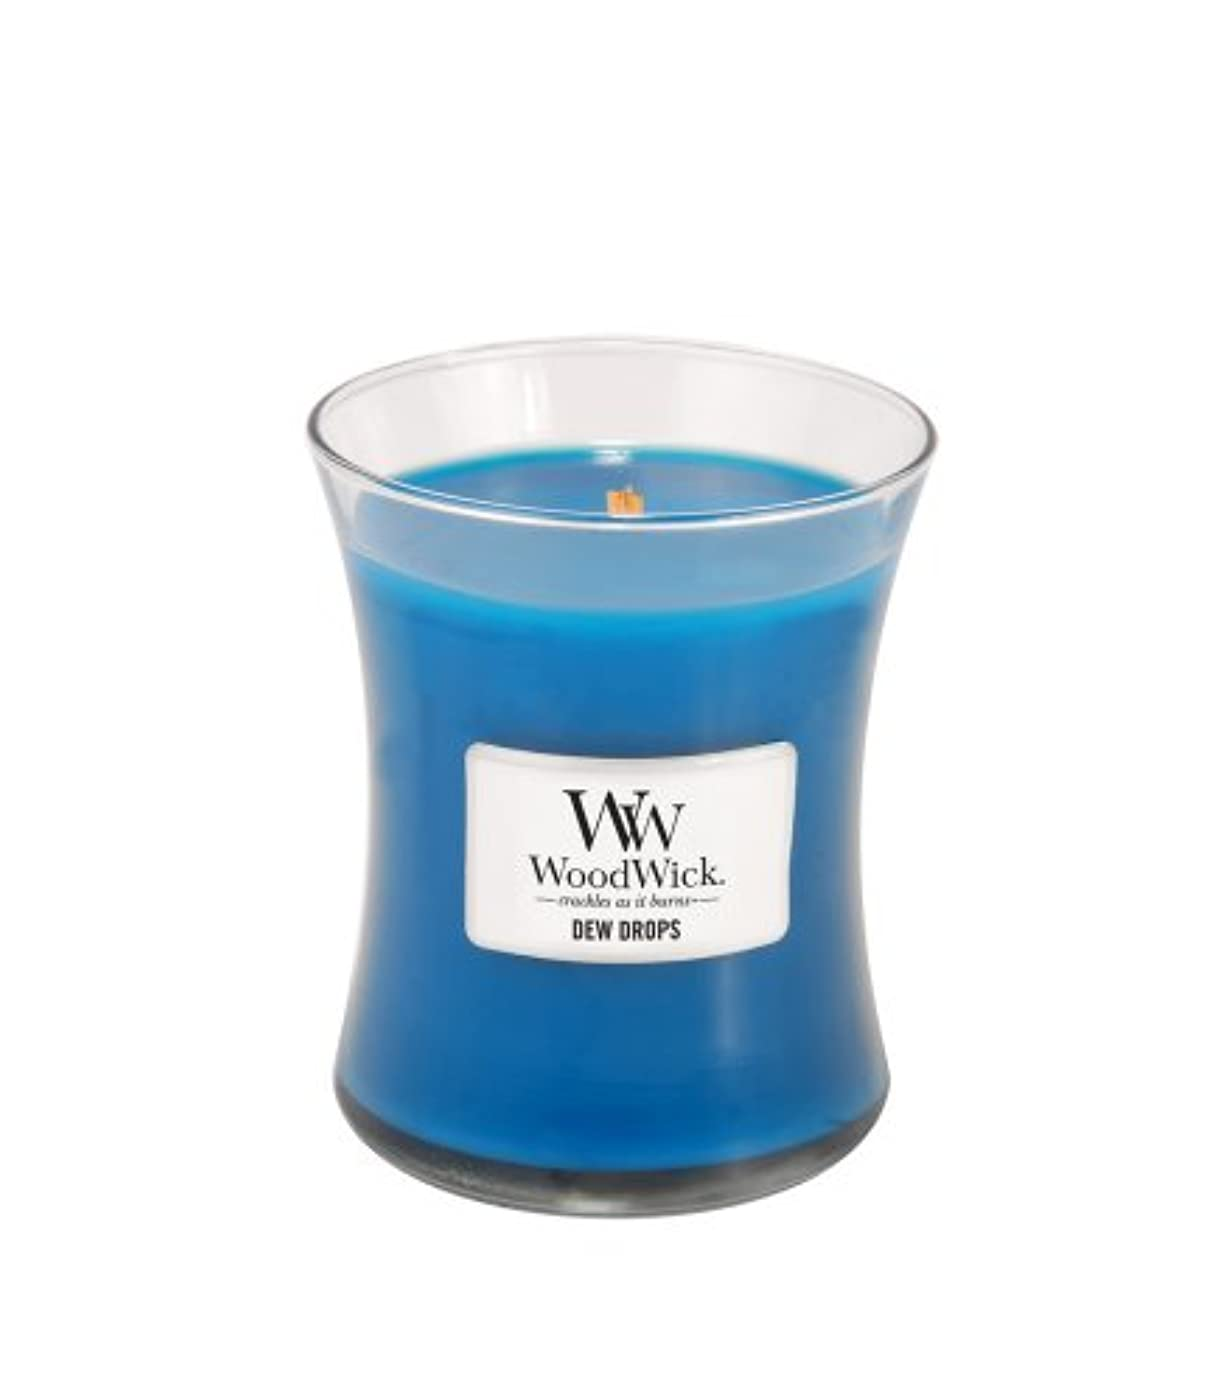 ズボン仕方トレッド(Medium) - WoodWick Dew Drops Fragrance Jar Candle, Medium